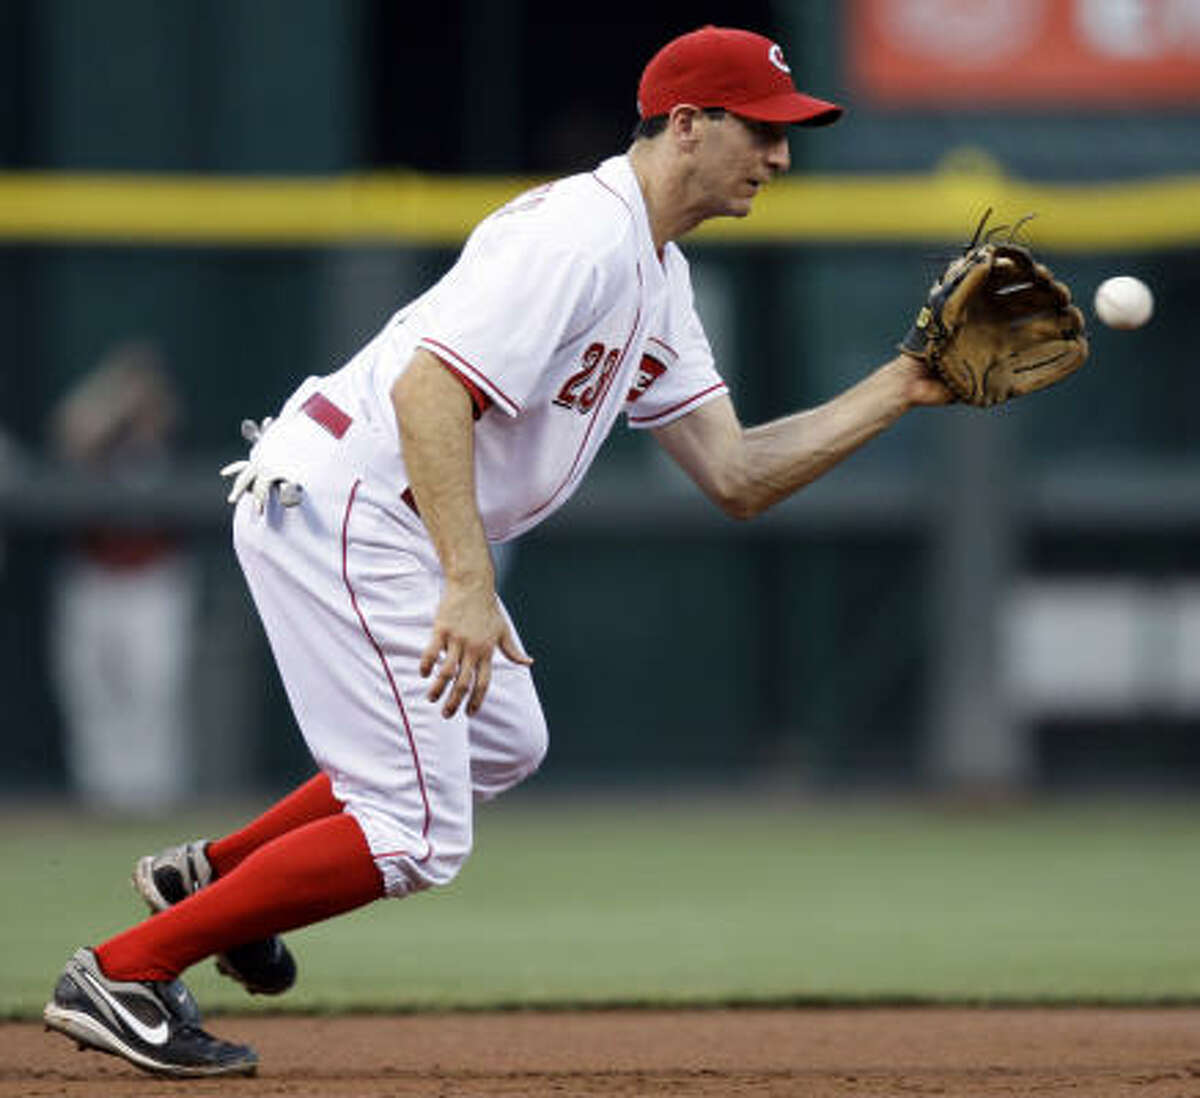 Reds third baseman Adam Rosales fields a ground ball hit by Houston's Roy Oswalt for an out in the third inning.